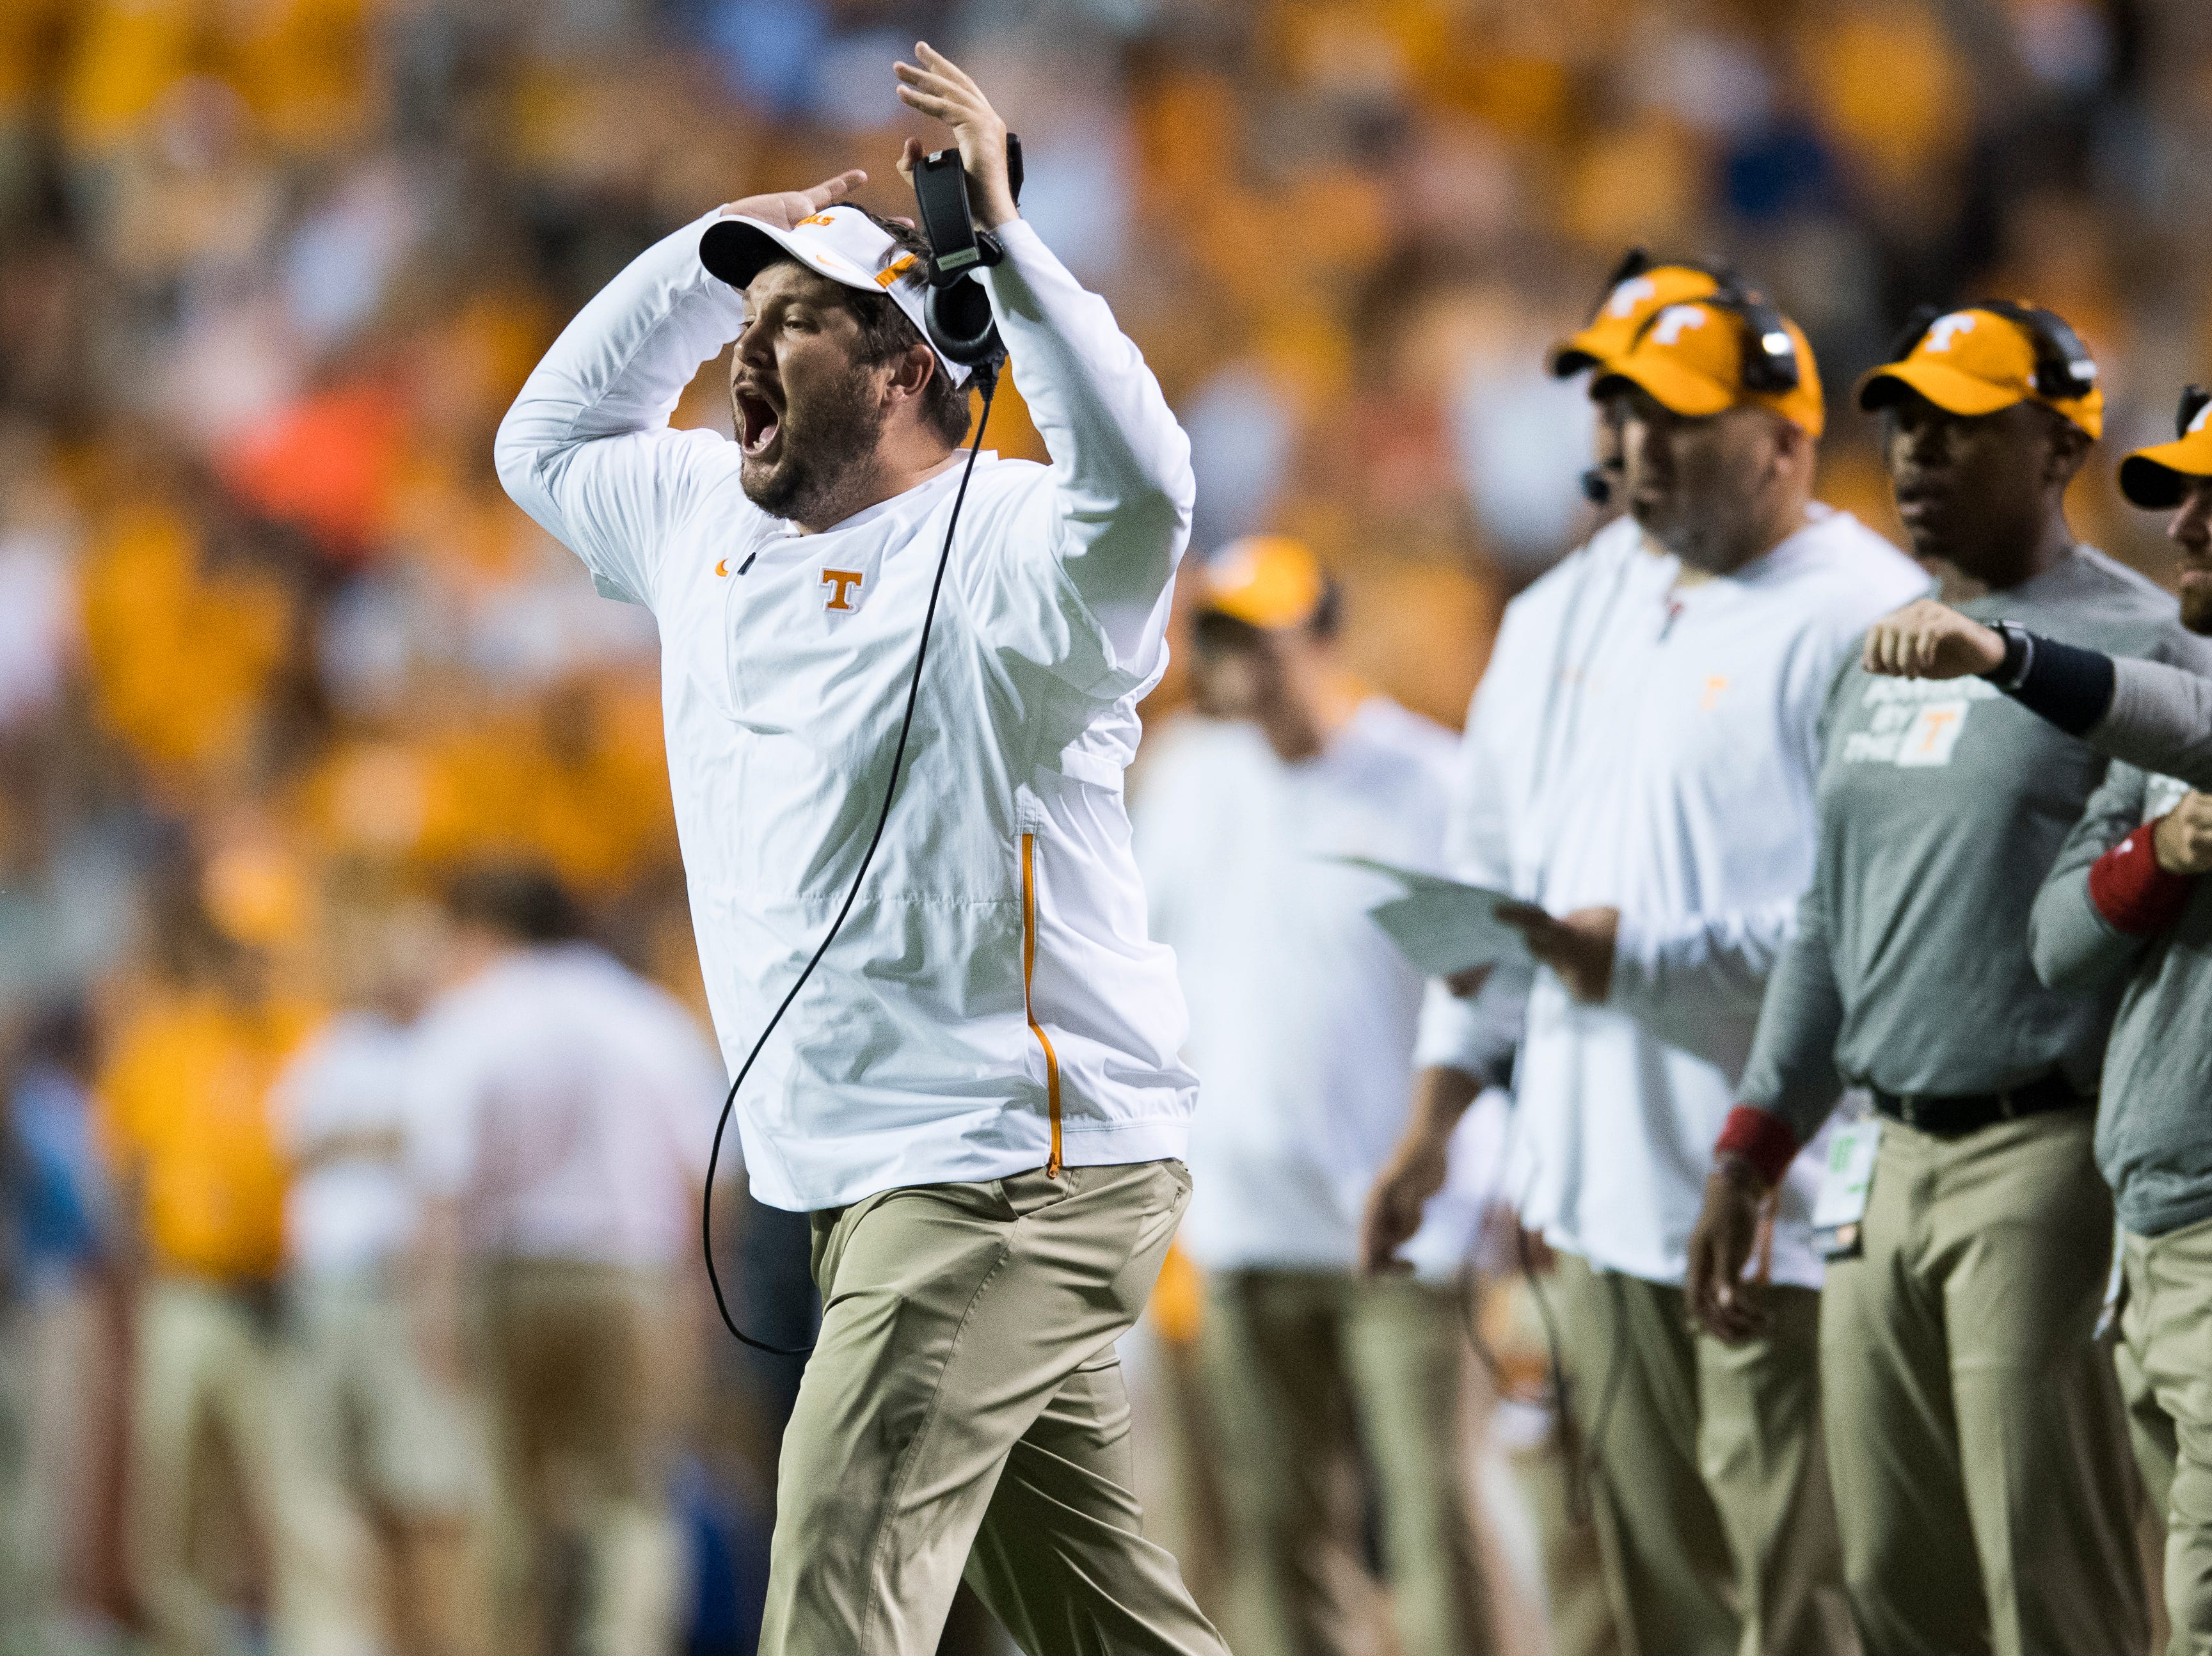 Tennessee tight ends coach Brian Niedermeyer calls from the sidelines during a game between Tennessee and Florida at Neyland Stadium in Knoxville, Tennessee on Saturday, September 22, 2018.